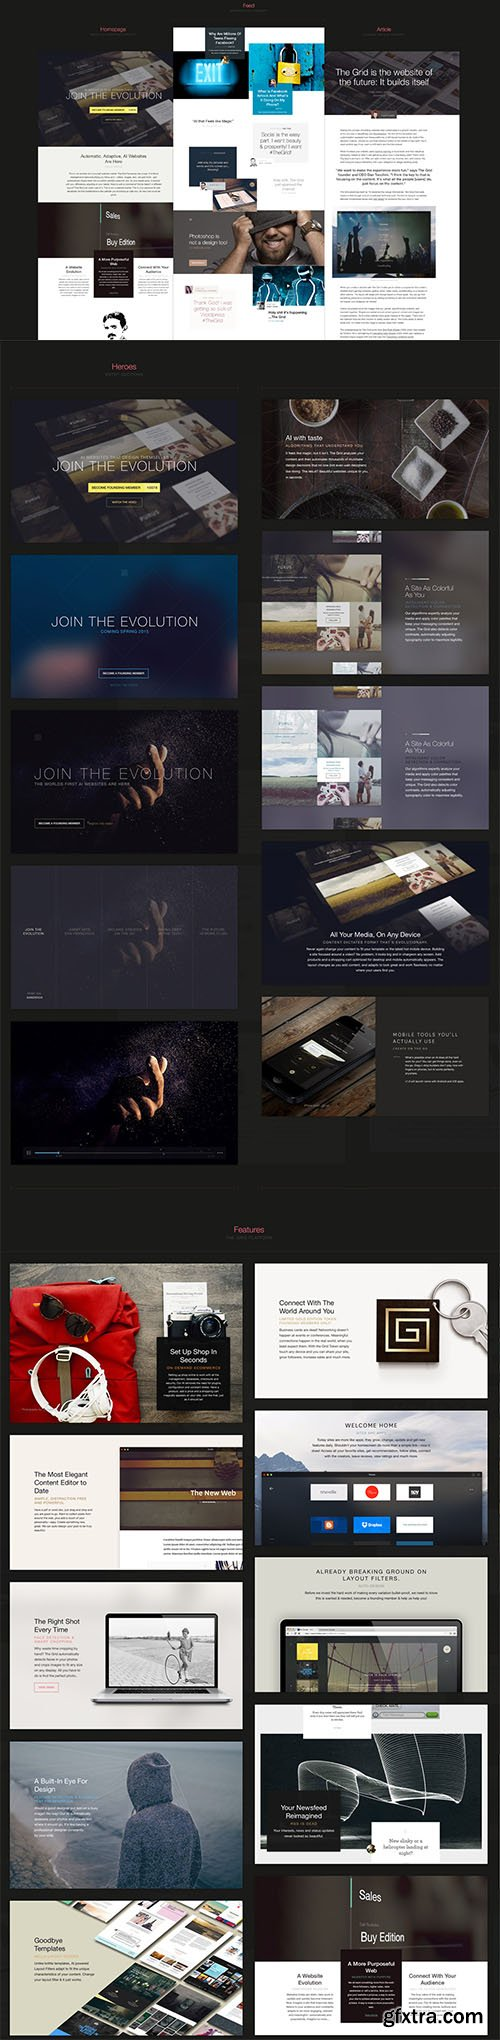 PSD Web Templates - The Grid